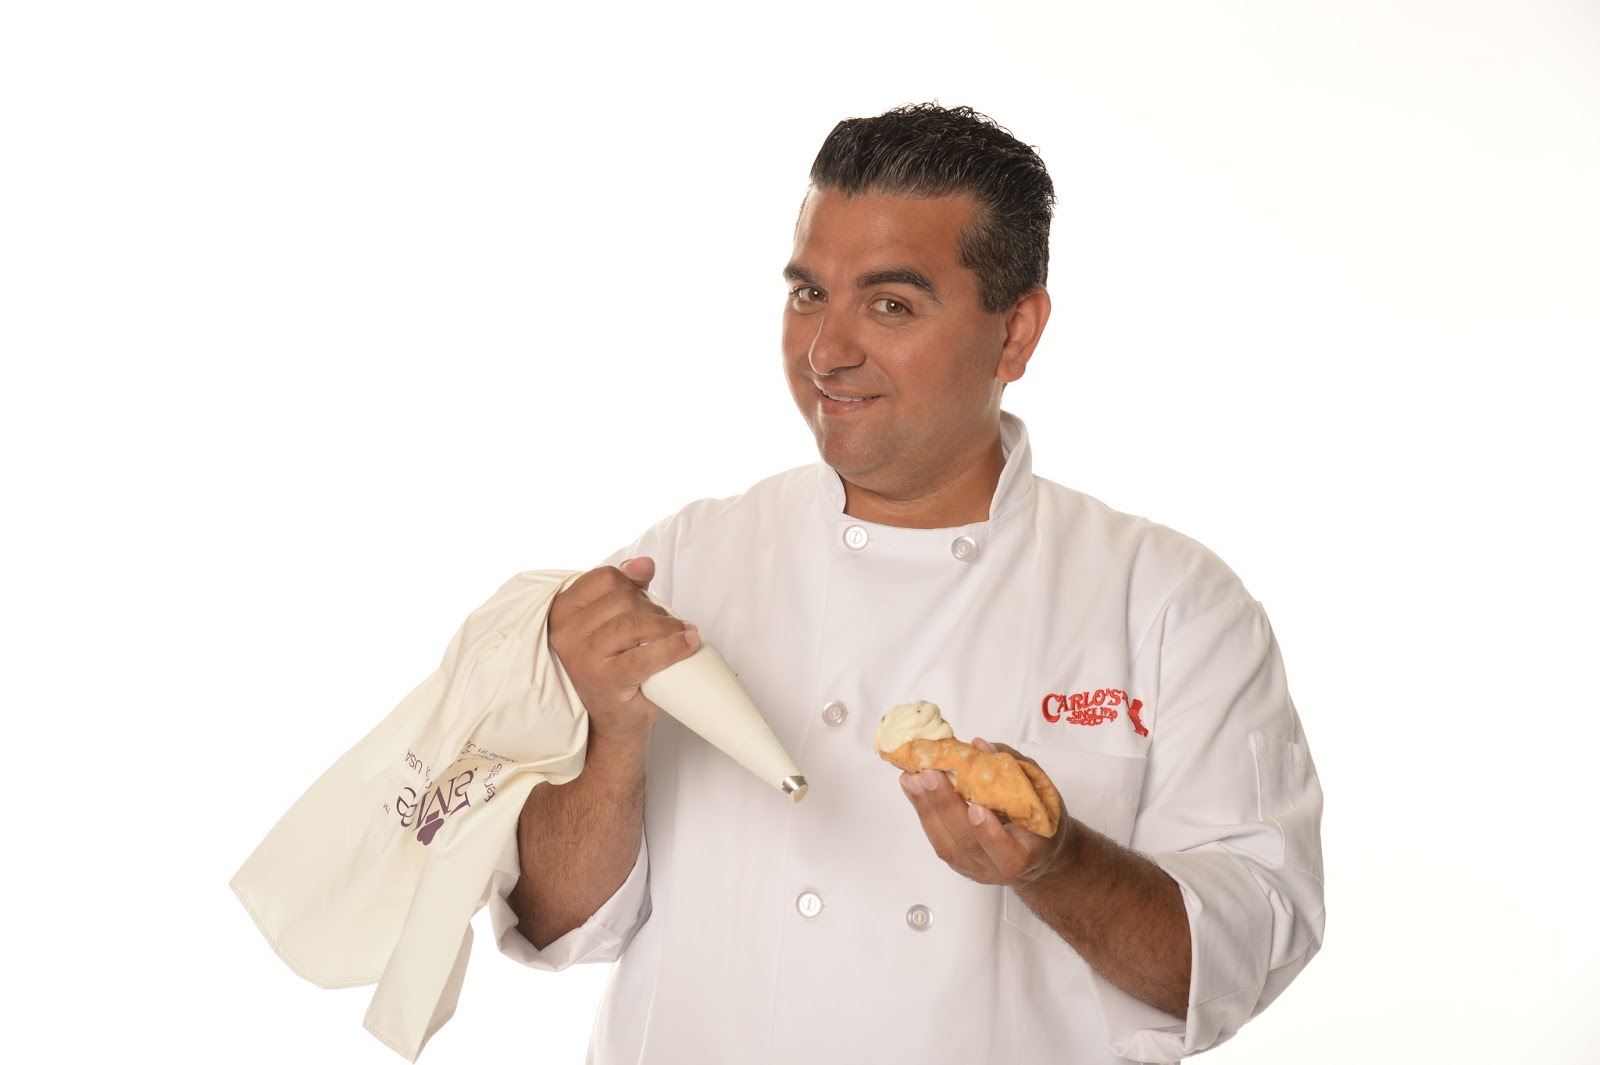 Cake Boss Locations Florida